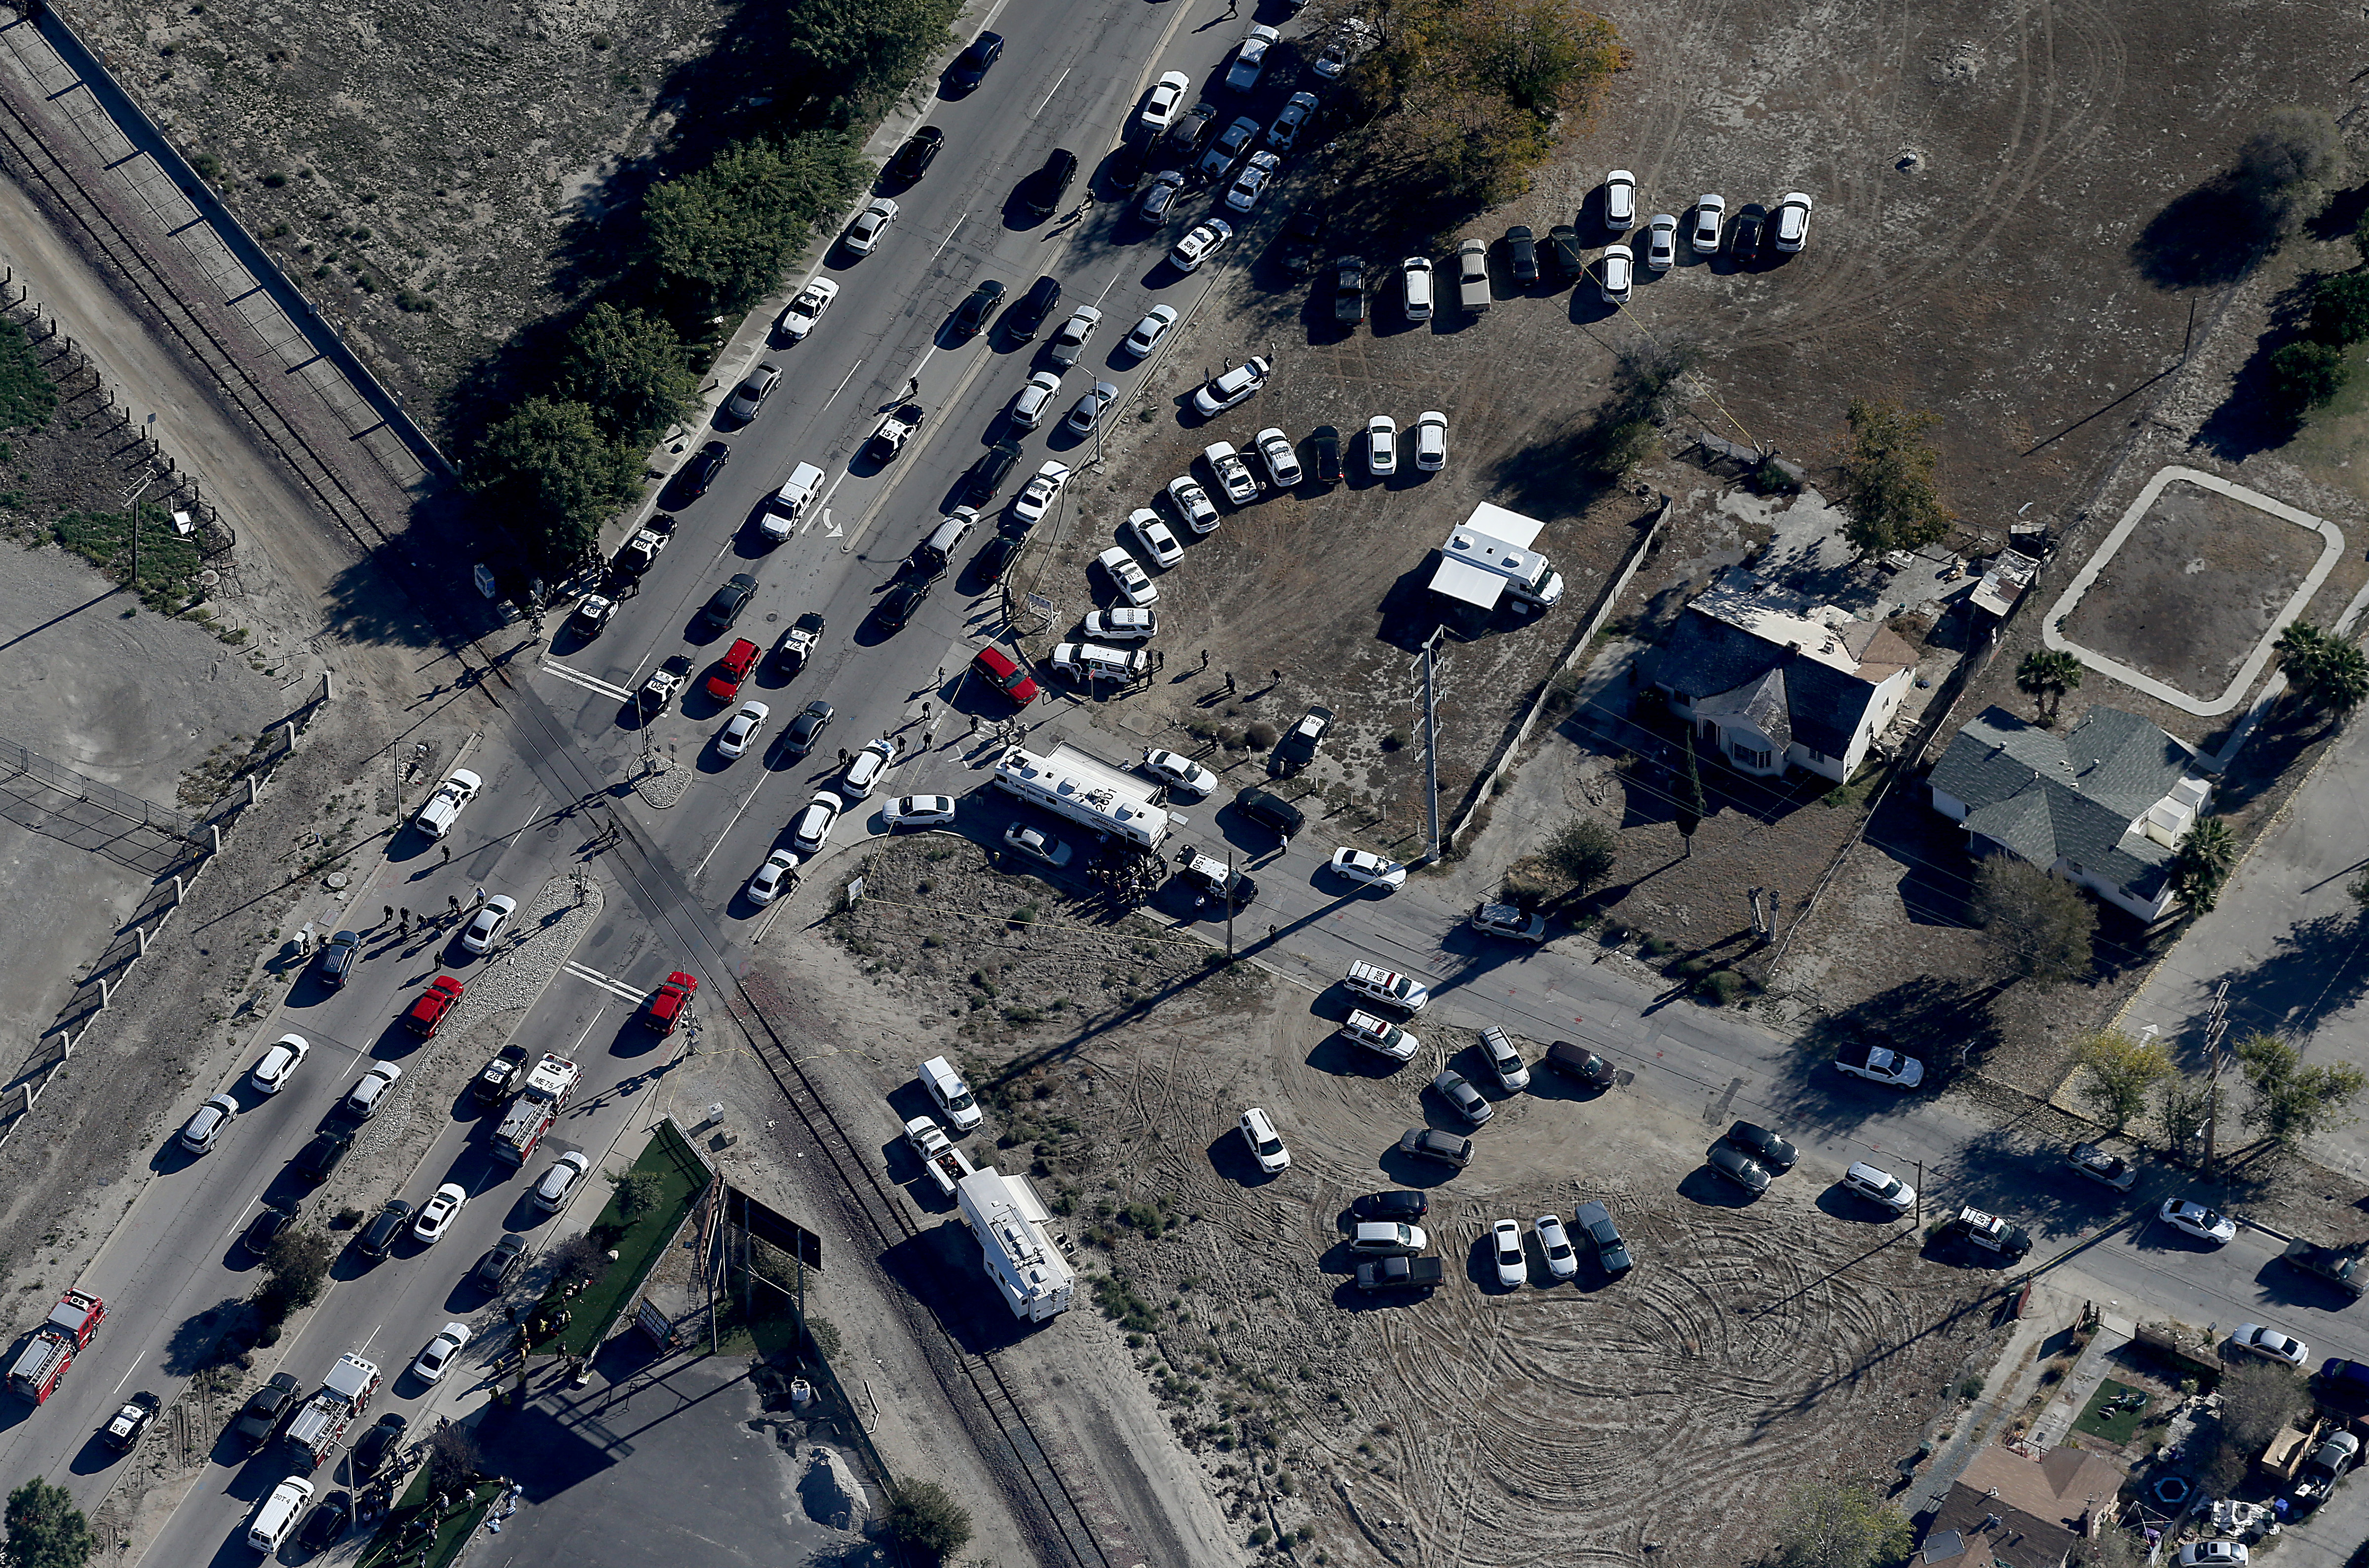 Police and emergency vehicles line Waterman Avenue in front of the Inland Regional Center in San Bernardino, Calif., scene of a mass shooting on Wednesday, Dec. 2, 2015.  As many as three gunmen believed to be wearing military-style gear opened fire Wednesday at the Southern California social services center. Authorities said the shooting rampage killed multiple people and wounded others.  (Luis Sinco/Los Angeles Times via AP)